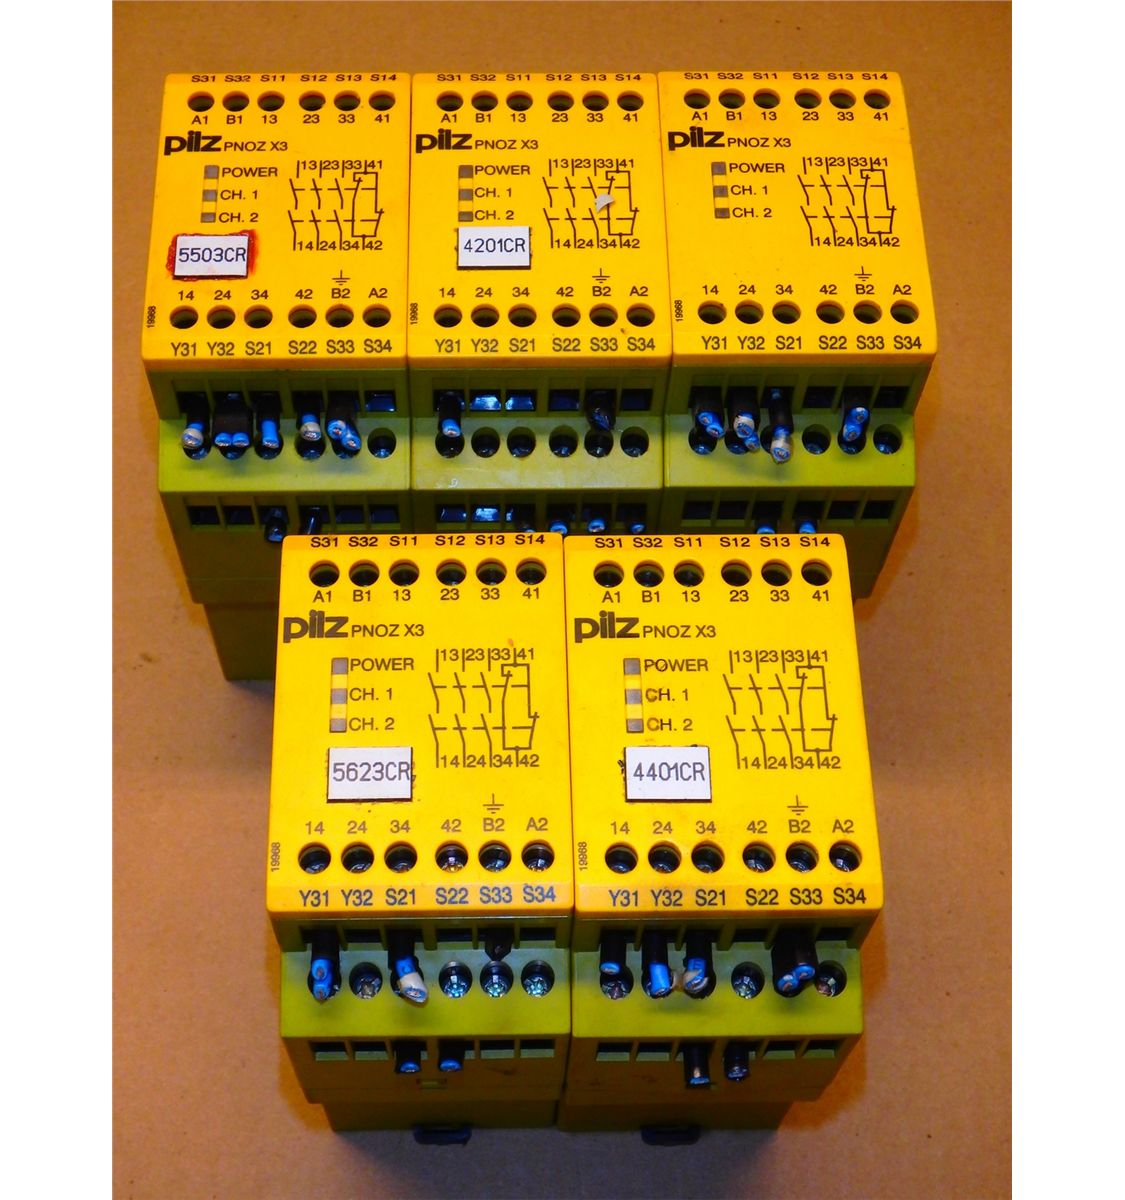 pilz pnoz x3 wiring examples pilz image wiring diagram pilz pnoz x3 safety relay on pilz pnoz x3 wiring examples